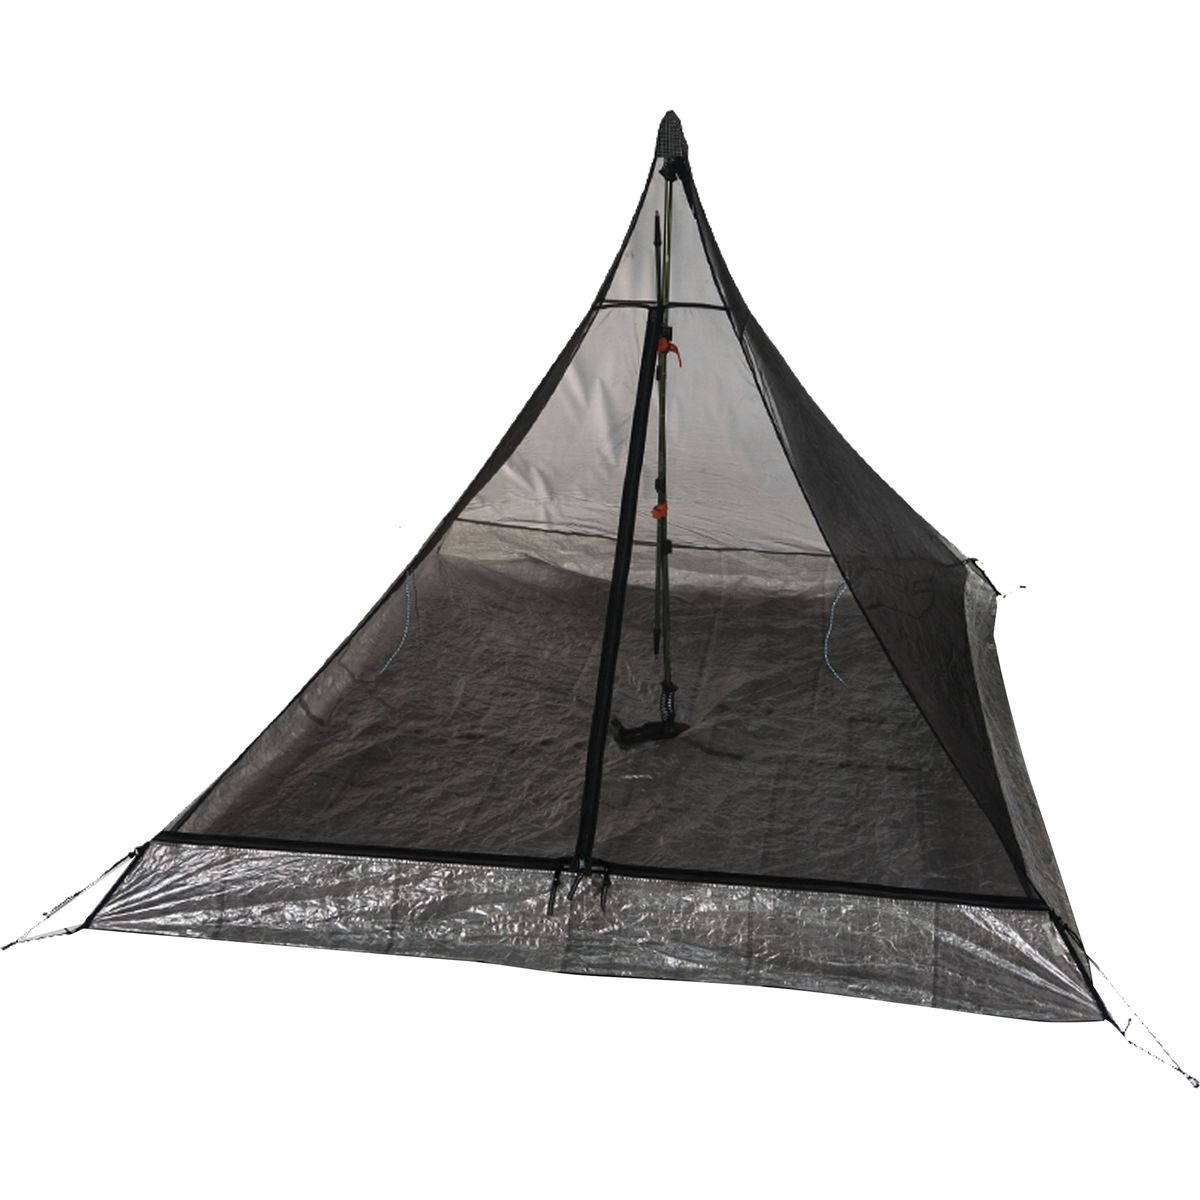 Hyperlite Mountain Gear UltaMid 2 Insert with Cuben Floor